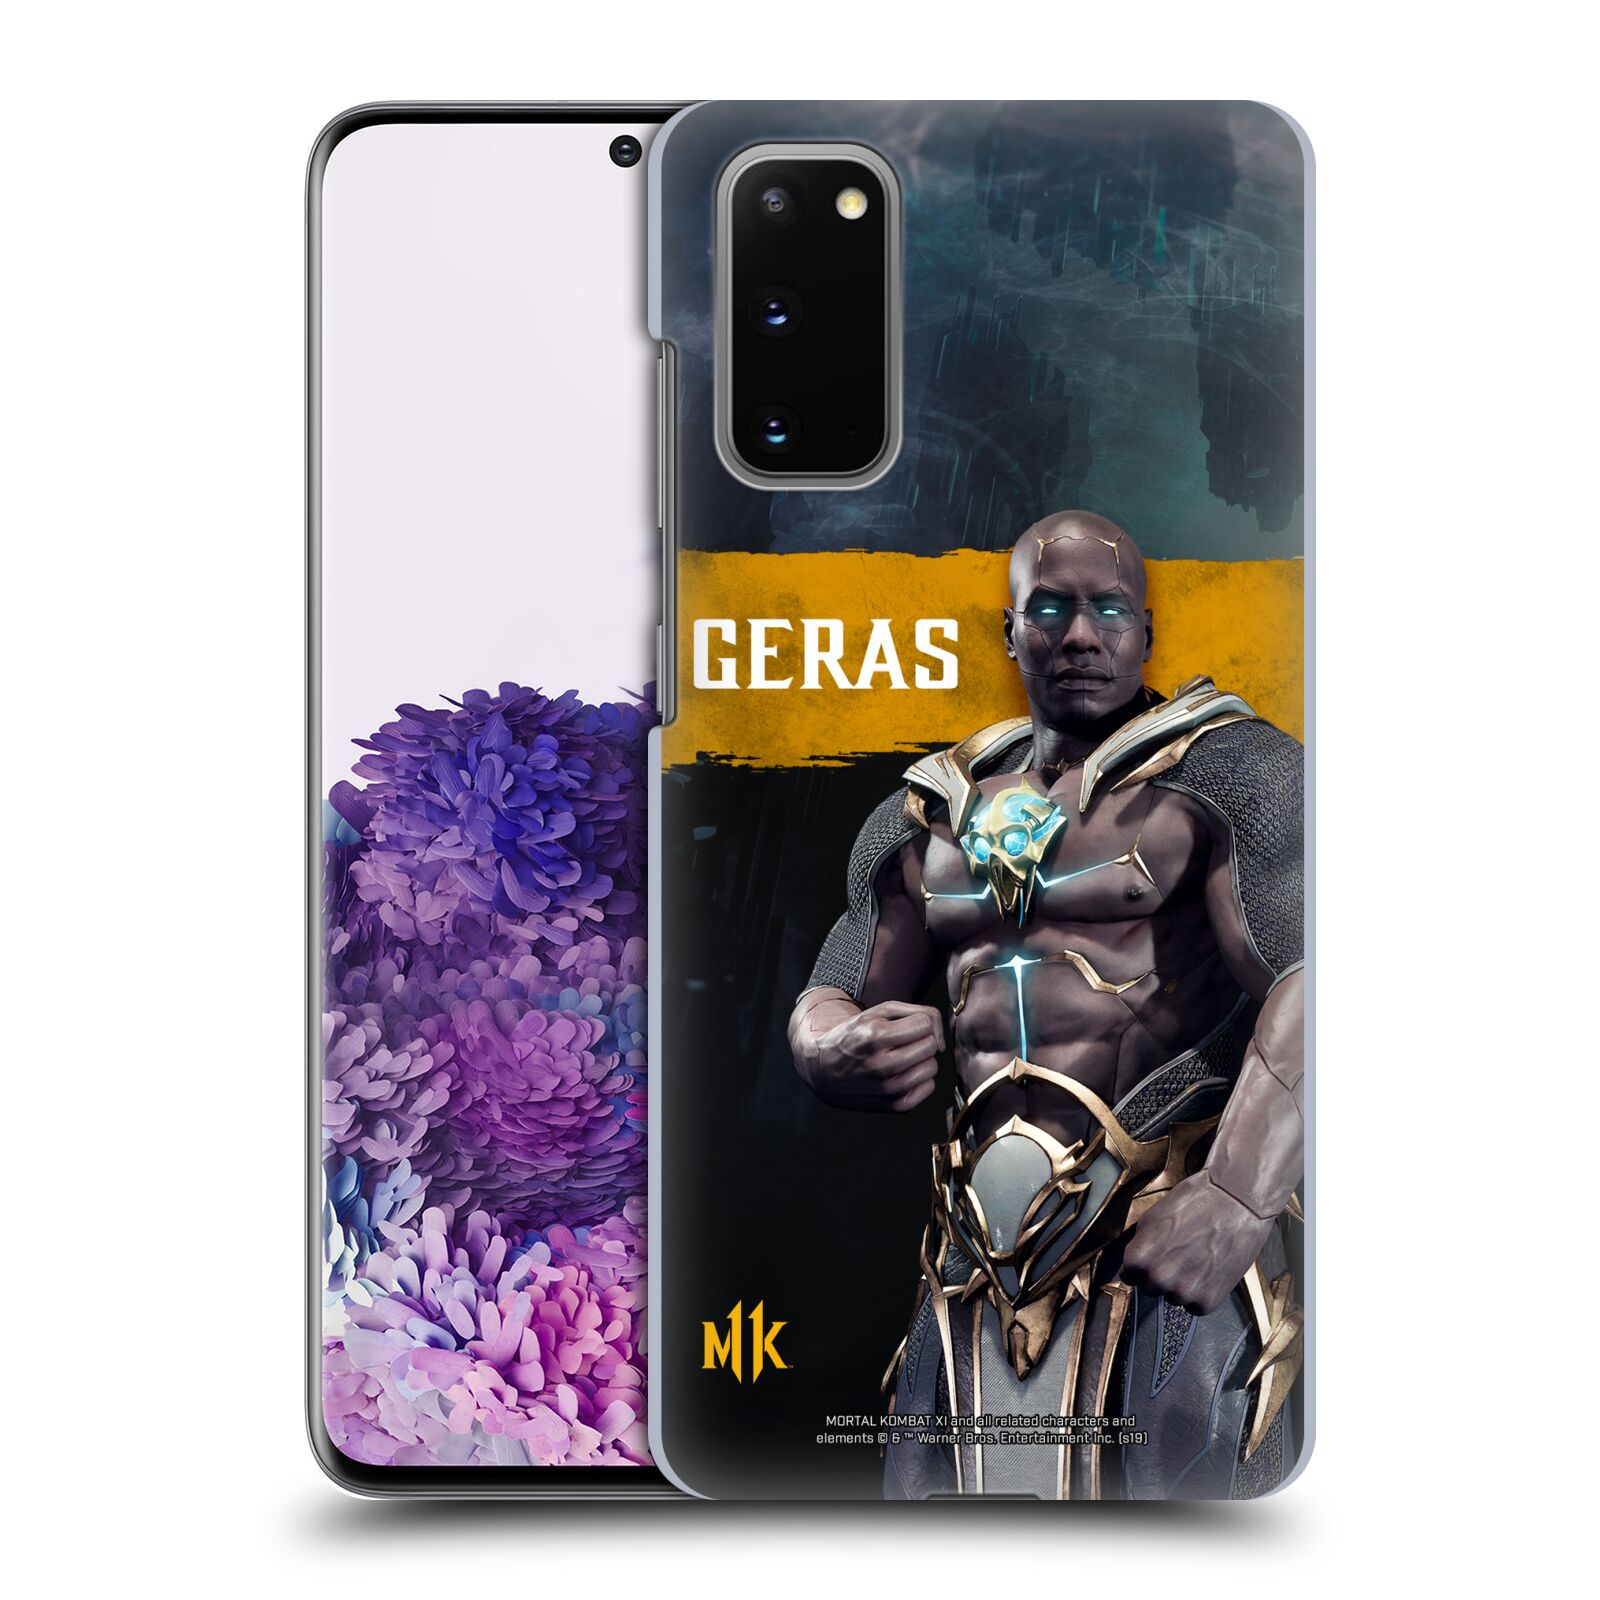 Official Mortal Kombat 11 Characters Geras Case for Samsung Galaxy S20 / S20 5G